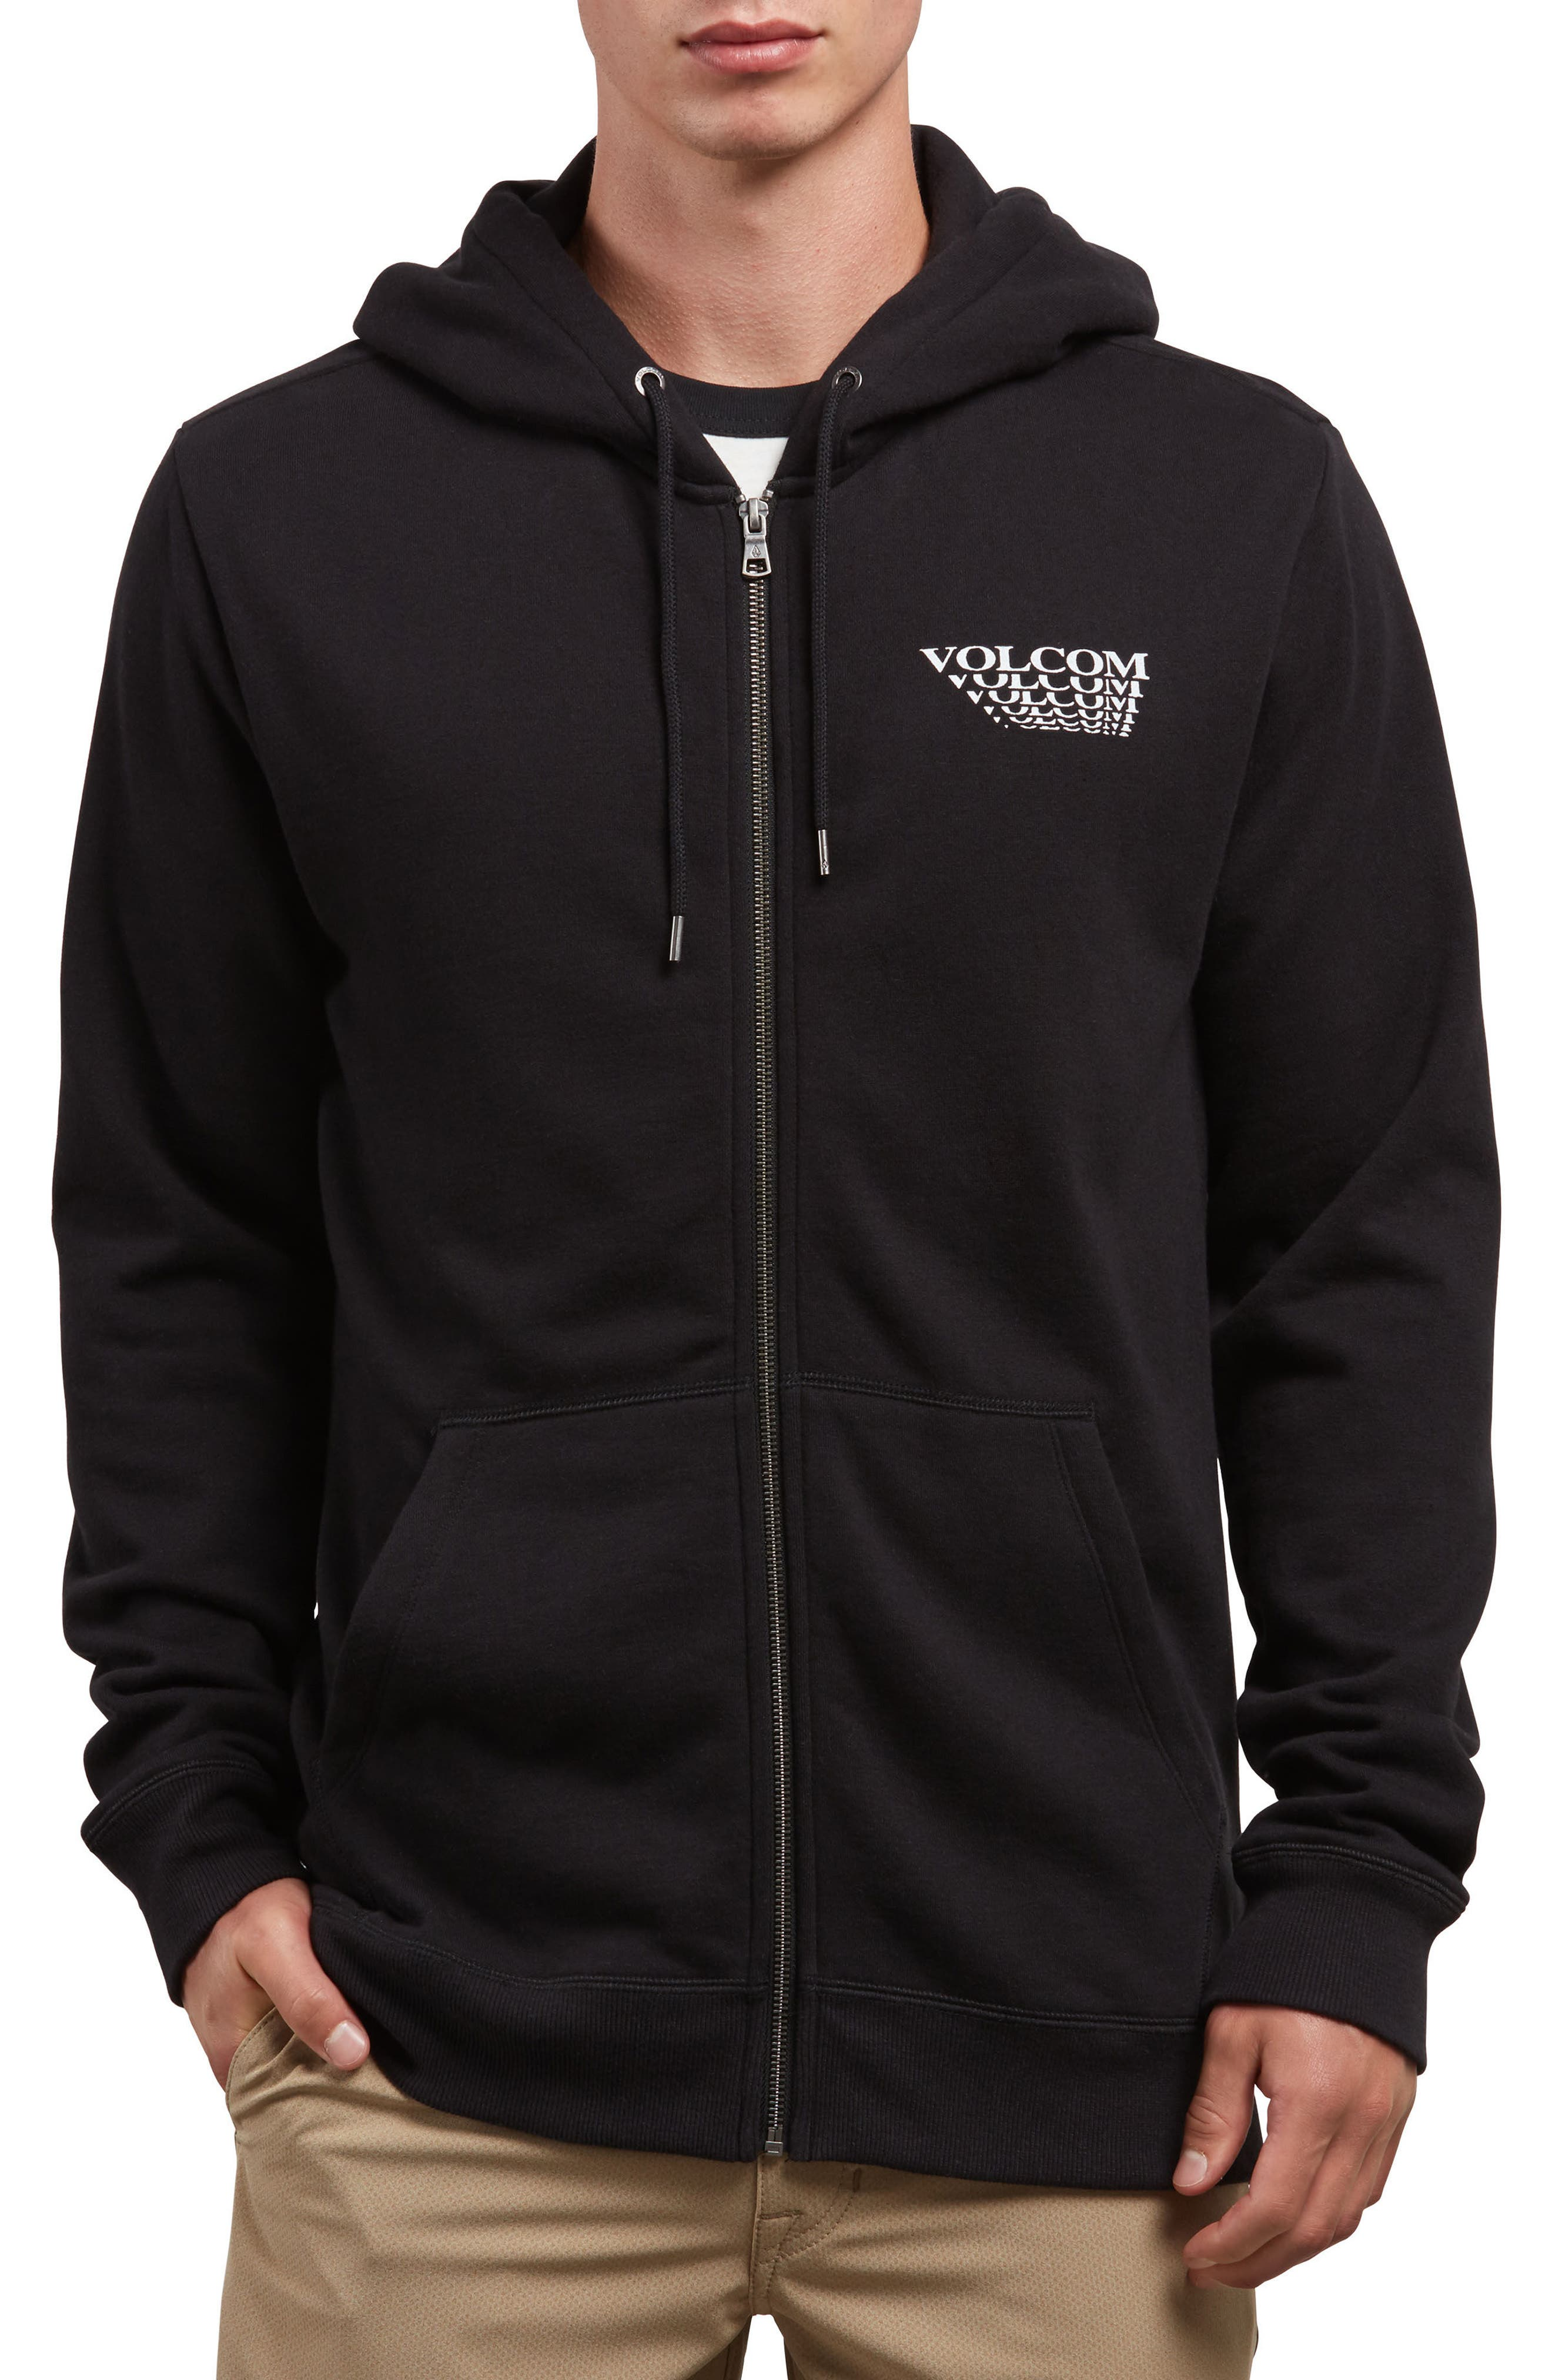 Reload Graphic Hoodie,                             Main thumbnail 1, color,                             Black